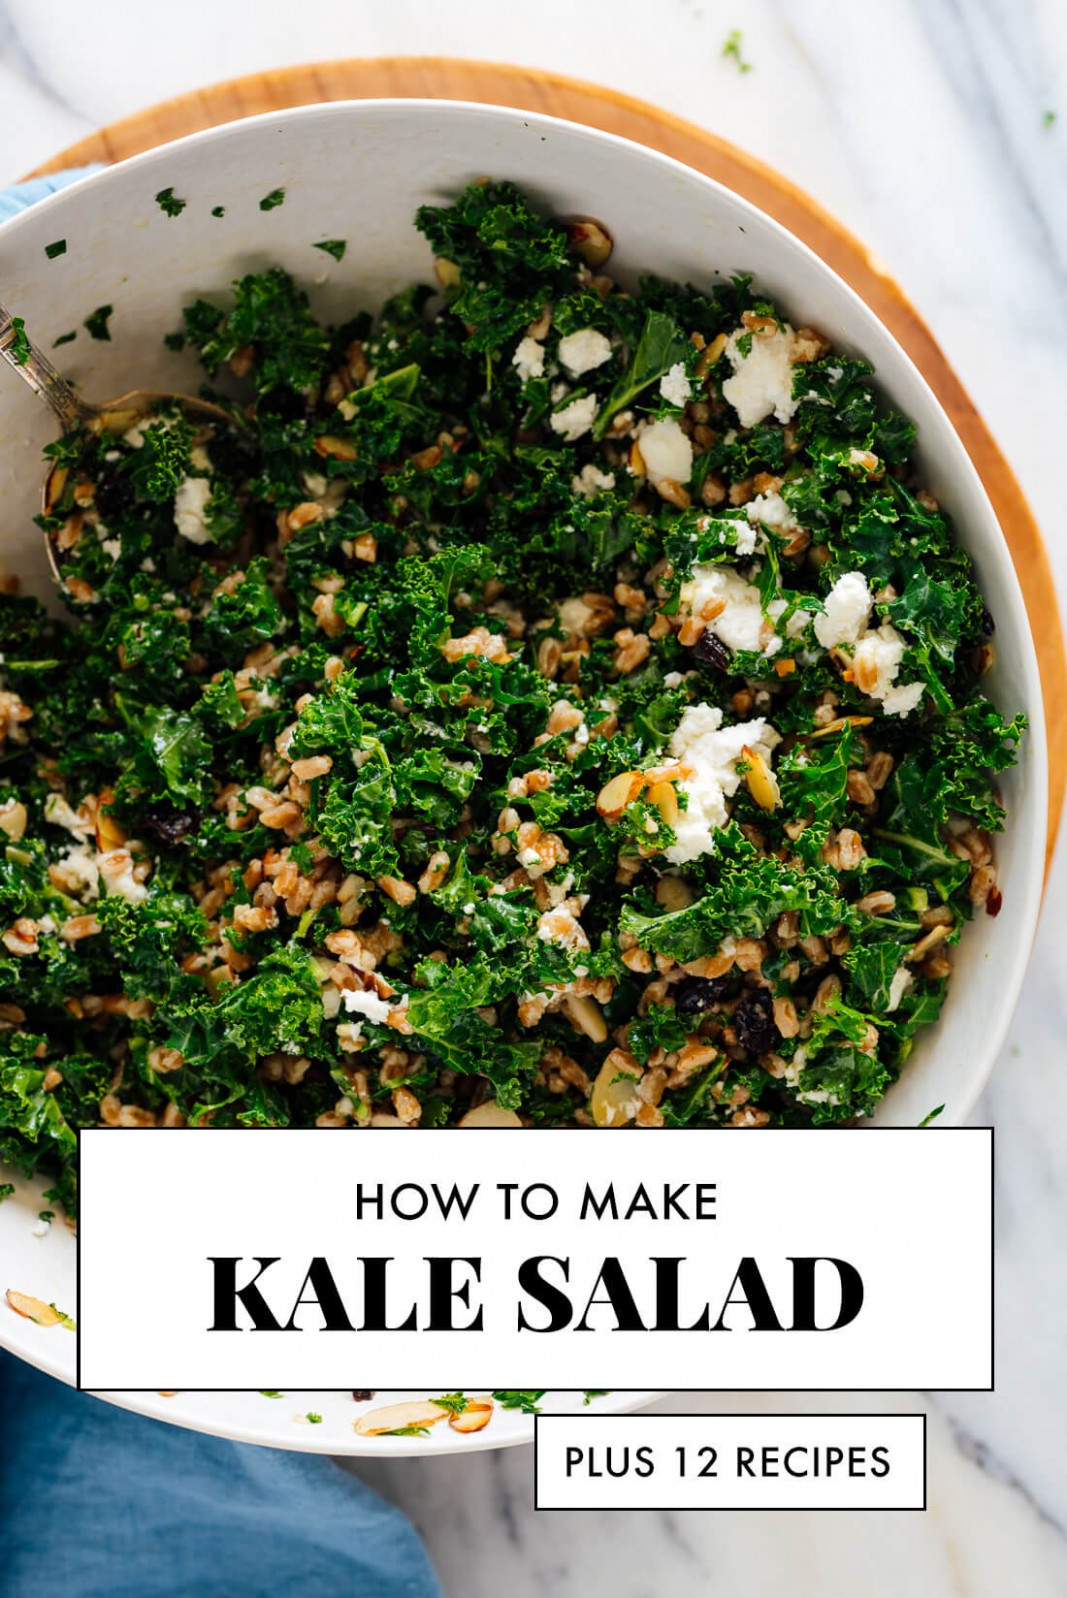 10 Favorite Kale Salads (plus tips!) - Cookie and Kate